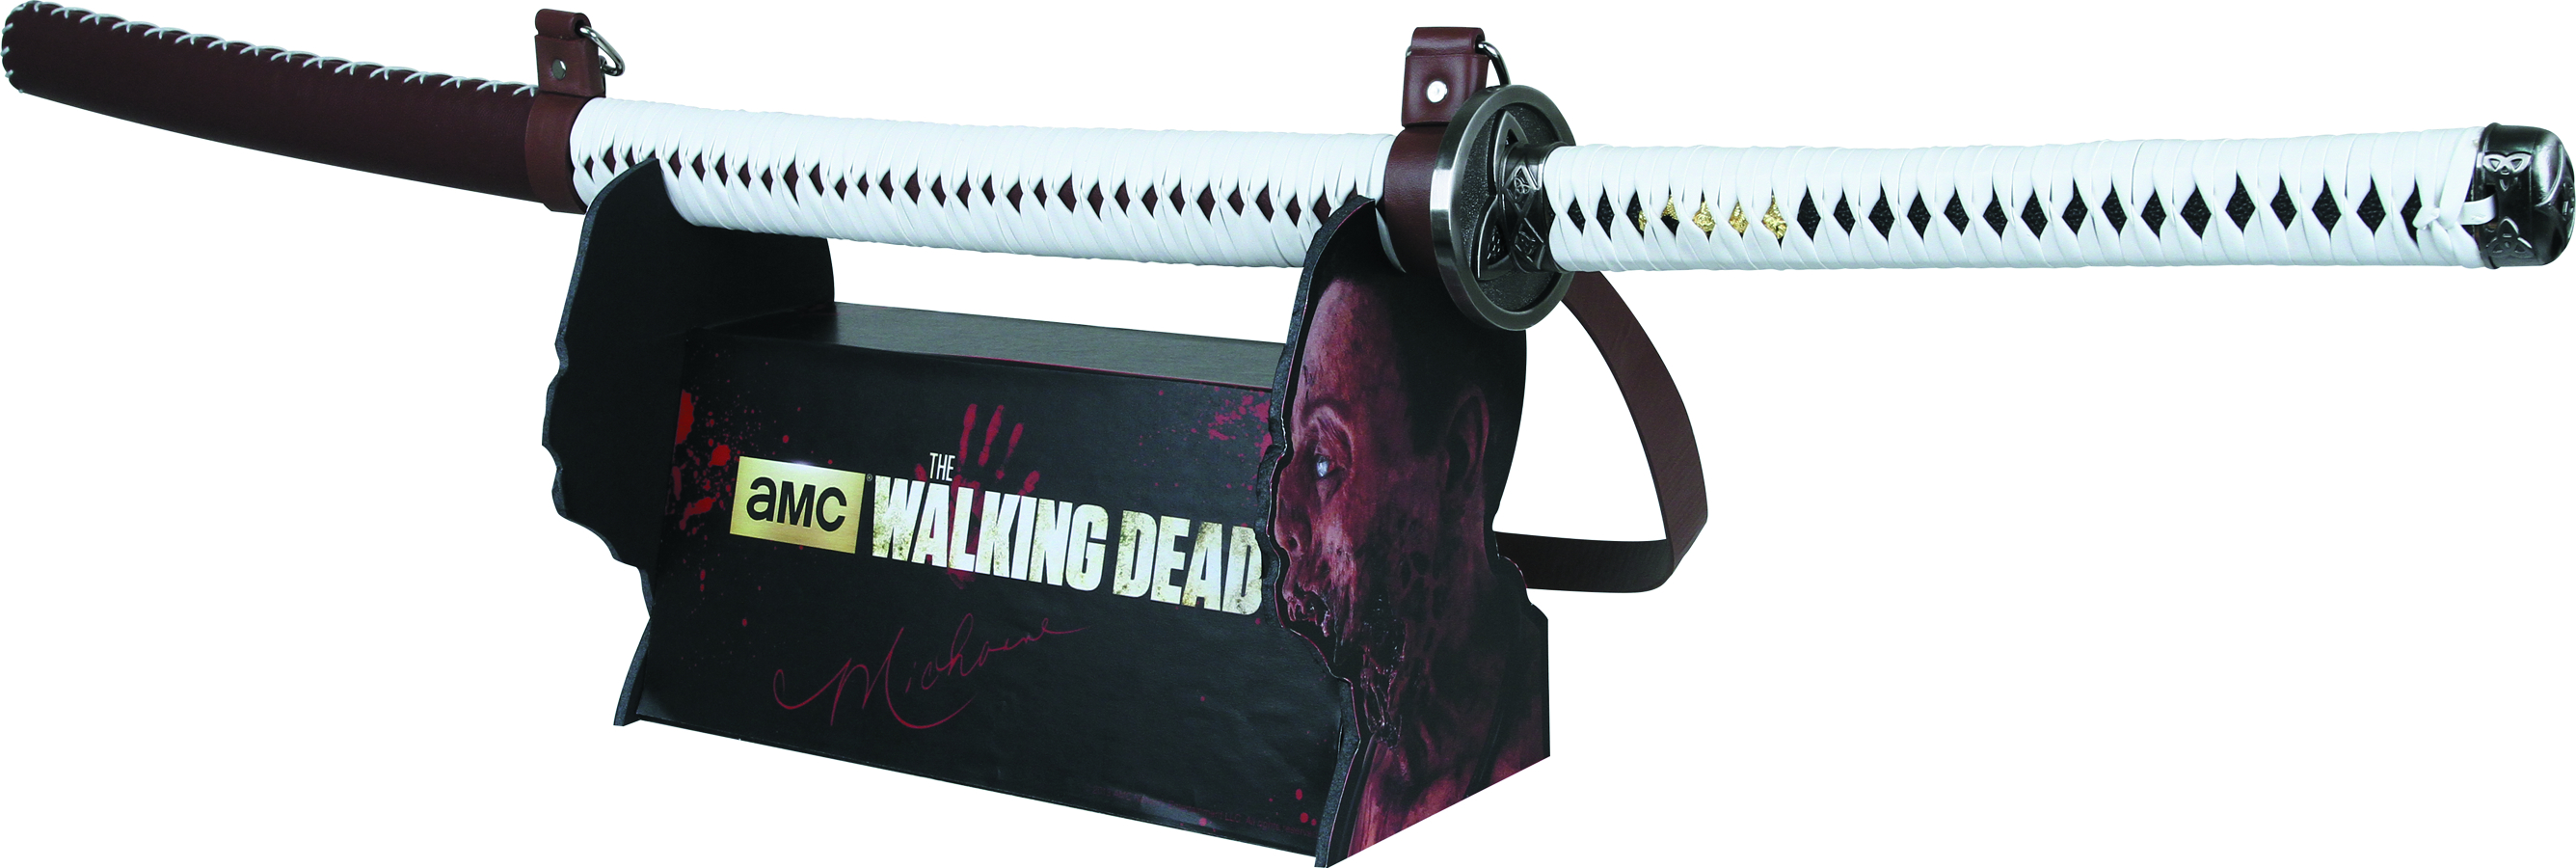 WALKING DEAD TV MICHONNE REPLICA SWORD